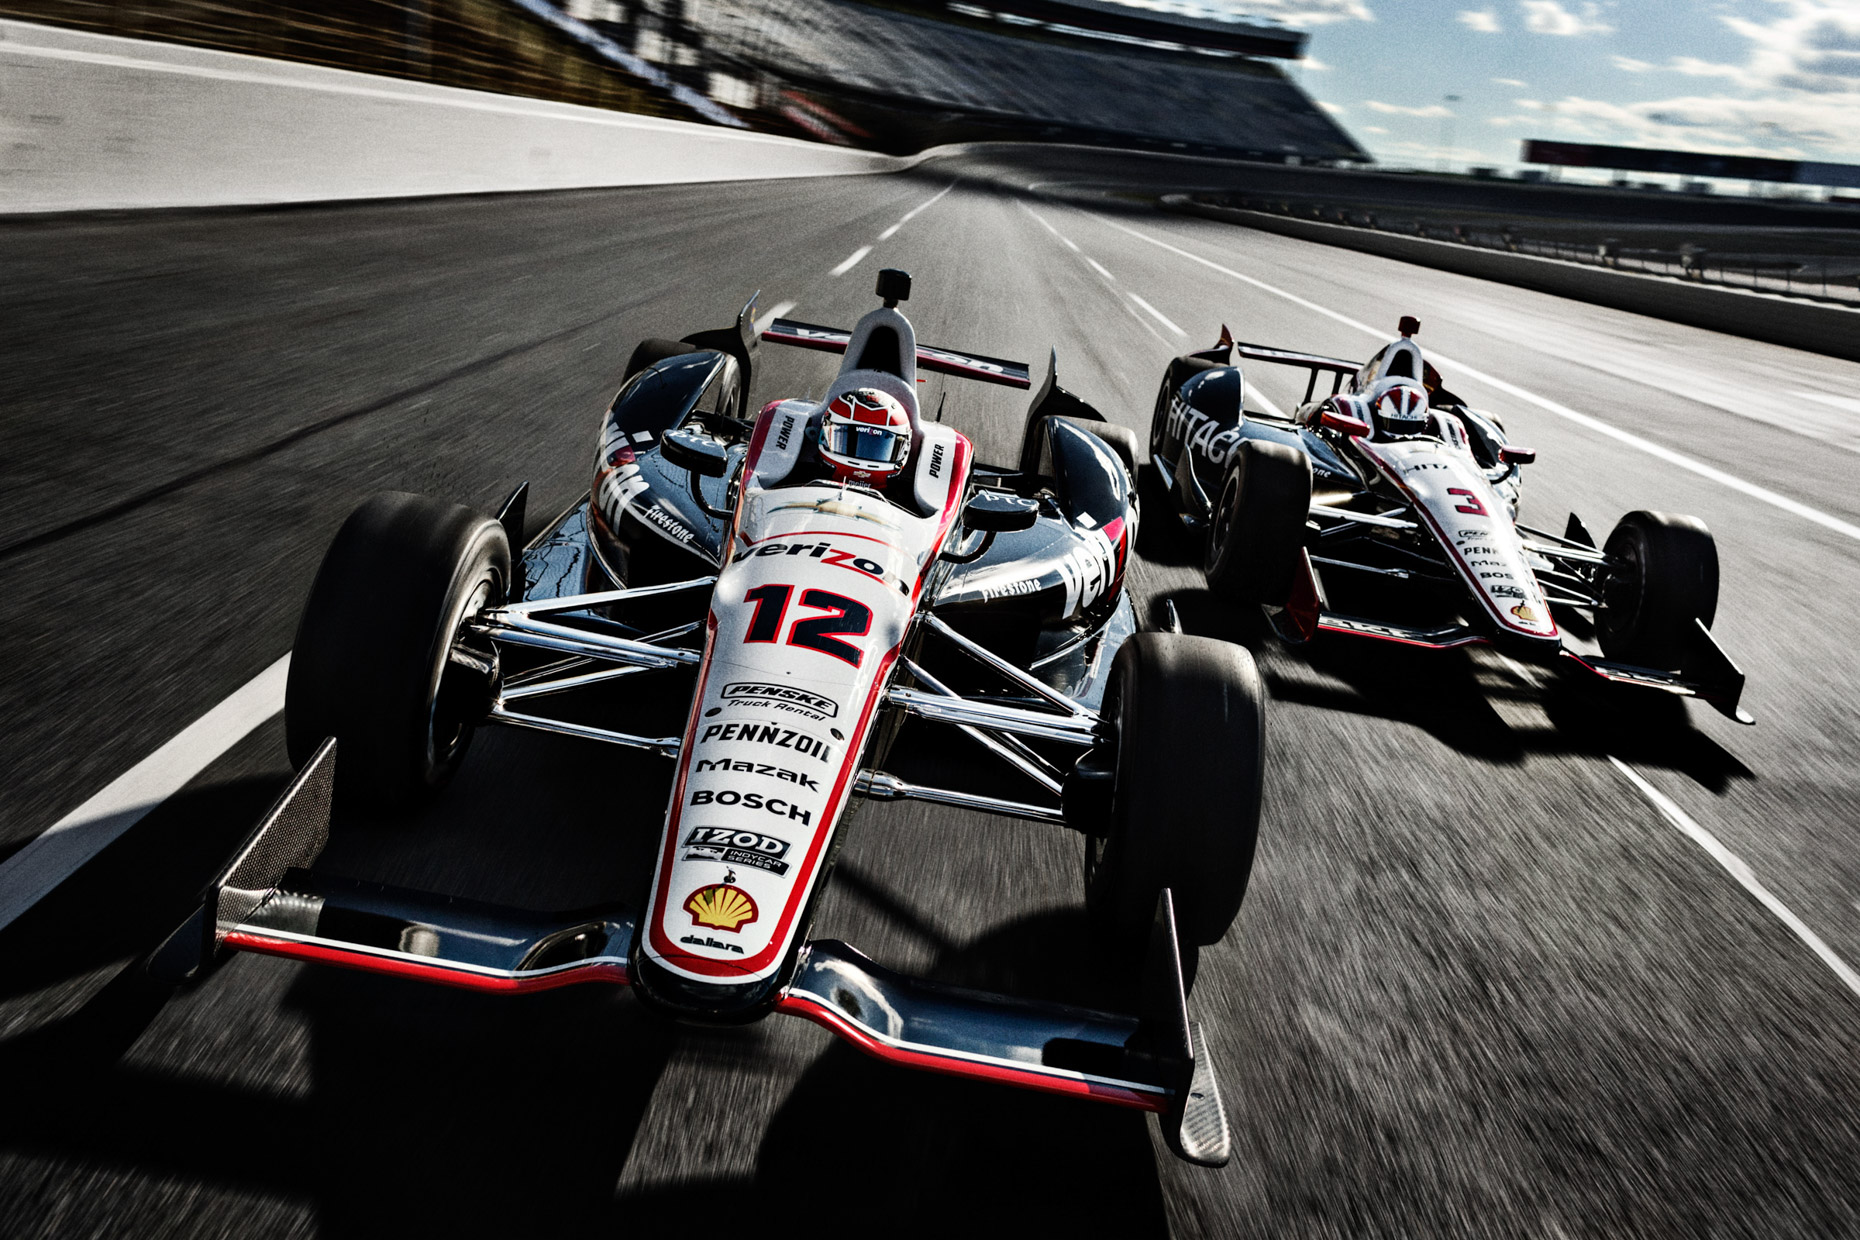 Indycar racing for Verizon, featuring Will Power